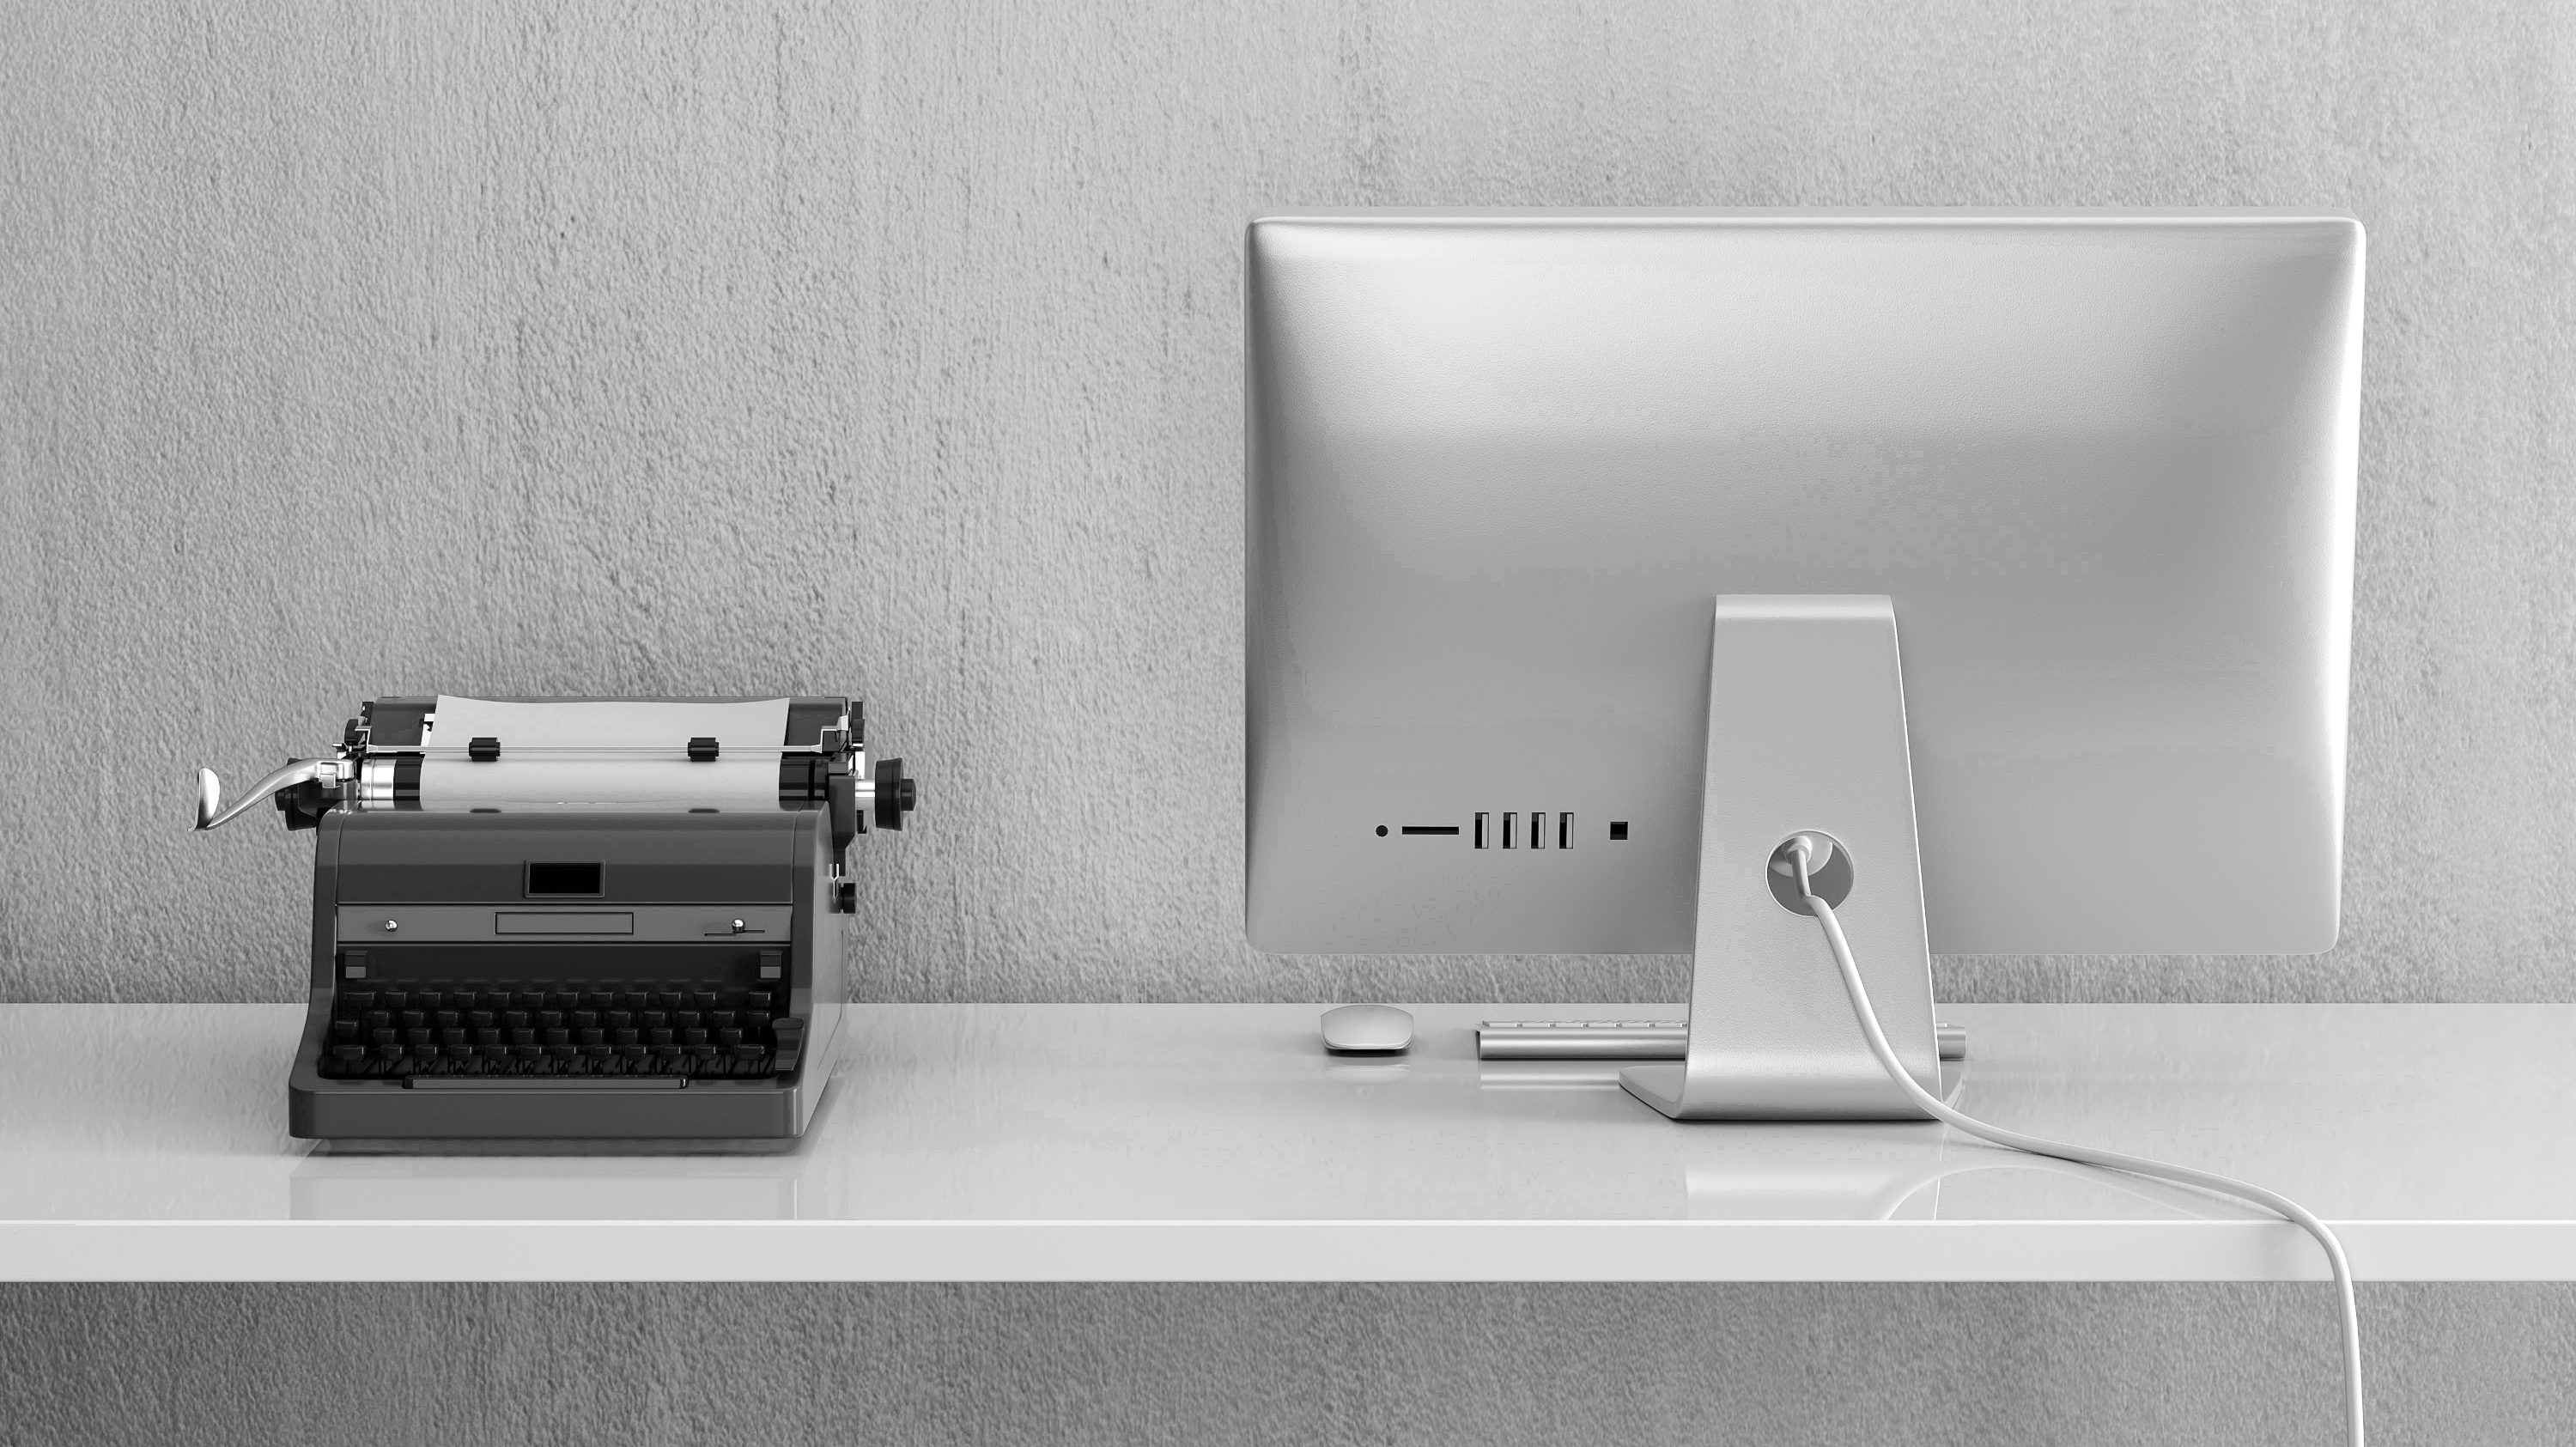 Black and white picture of typewriter next to Mac desktop illustrating digital transformation